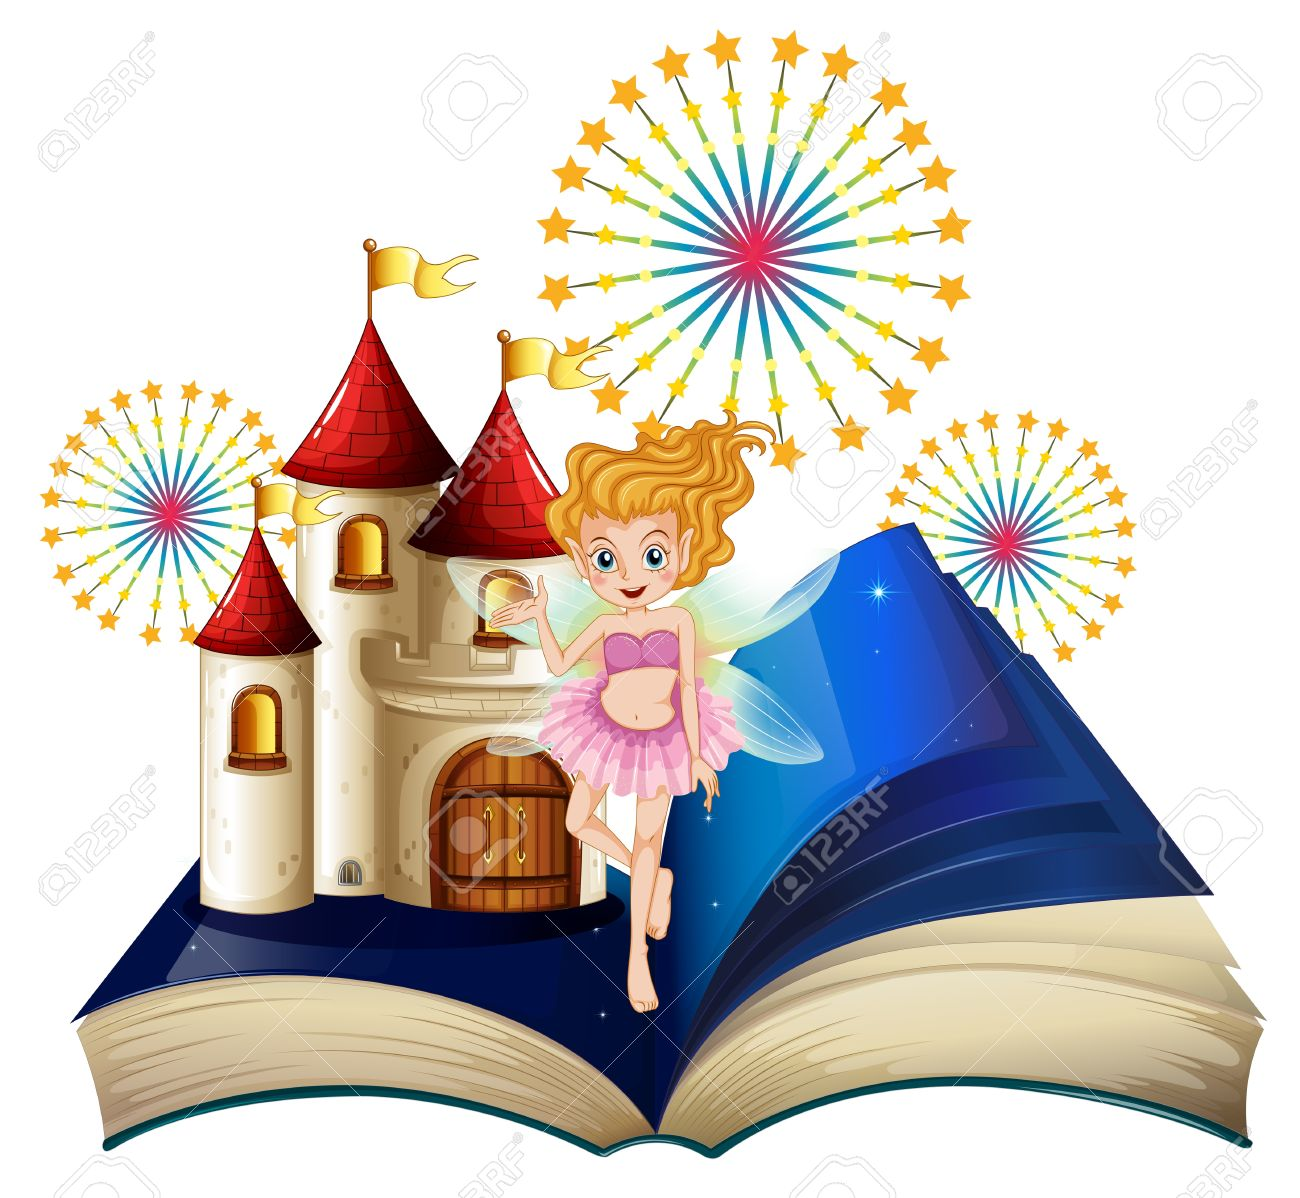 Illustration of a storybook with a fairy, a castle and fireworks on a white background Stock Vector - 20518217